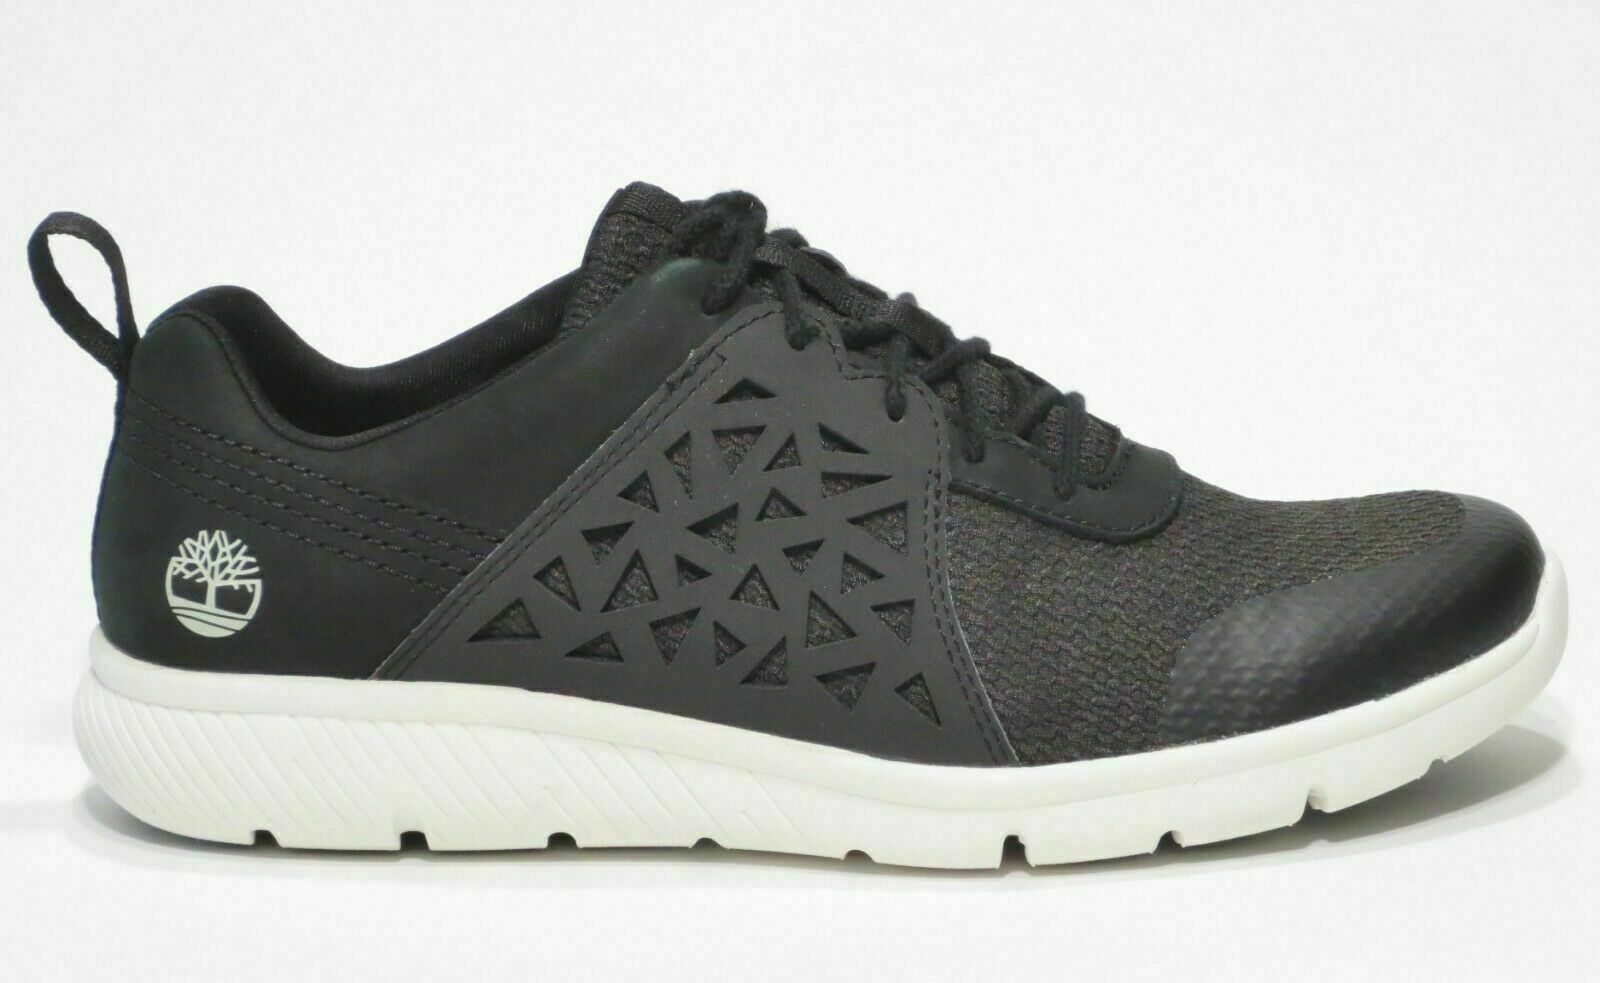 TIMBERLAND timberland womens black running low top walking fitness shoes boltero a1pel